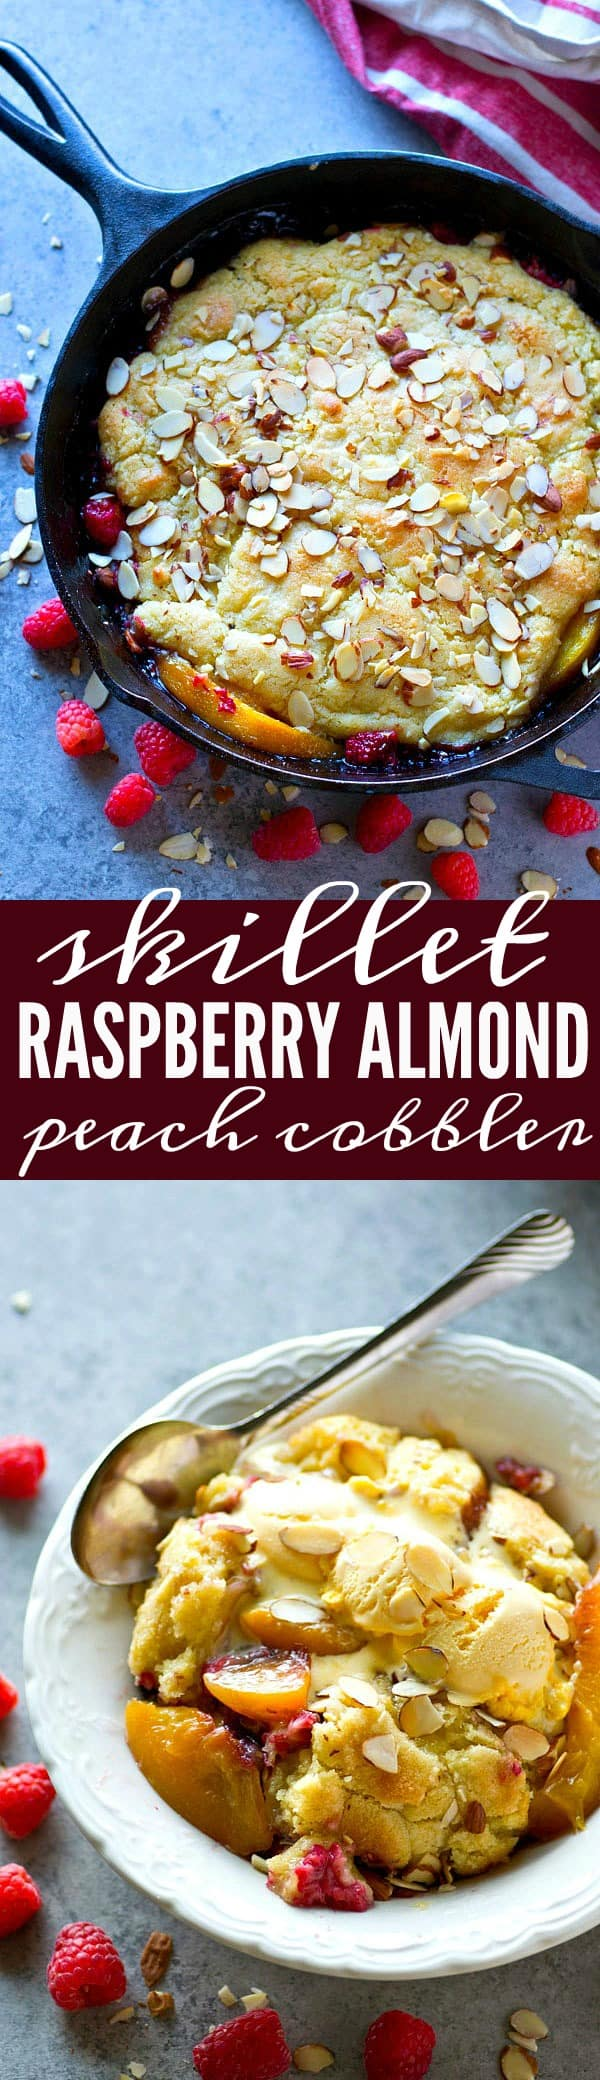 Juicy peaches and raspberries are topped with a cookie-like almond topping and it's all baked in your skillet! This raspberry almond peach cobbler is seriously the best summer dessert ever.